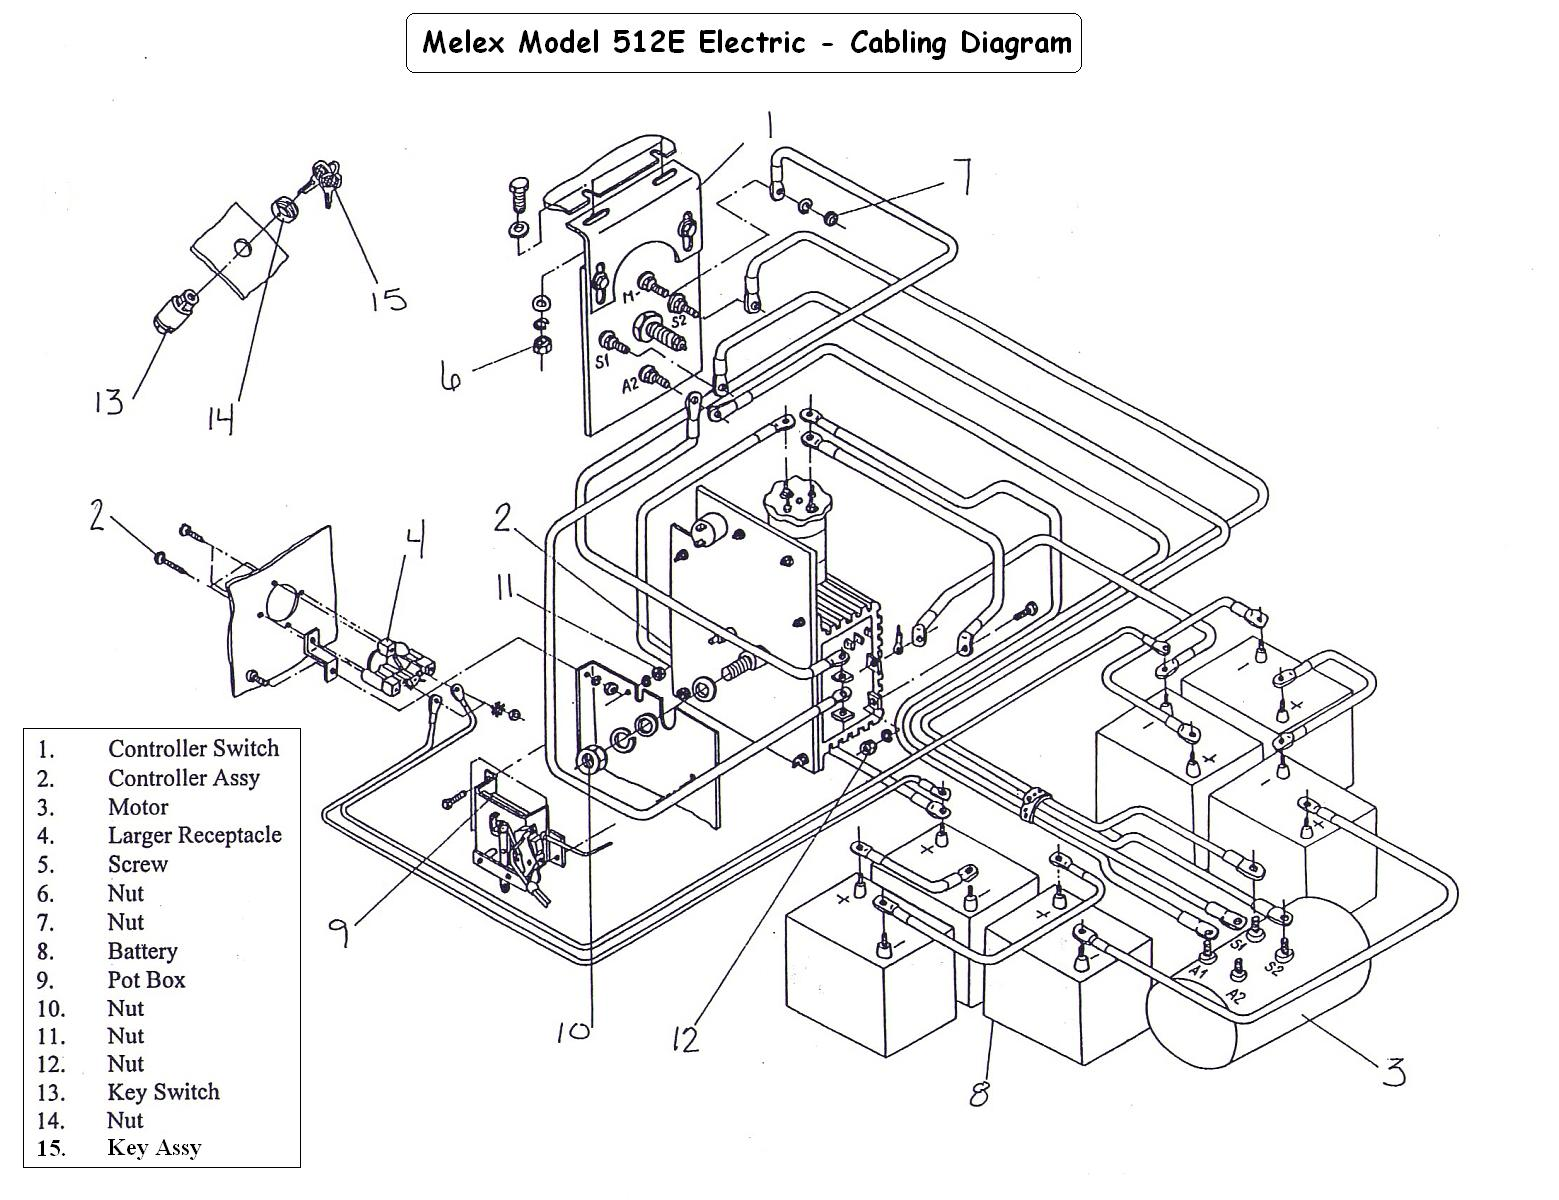 36 Volt Melex Wiring Diagram : 28 Wiring Diagram Images